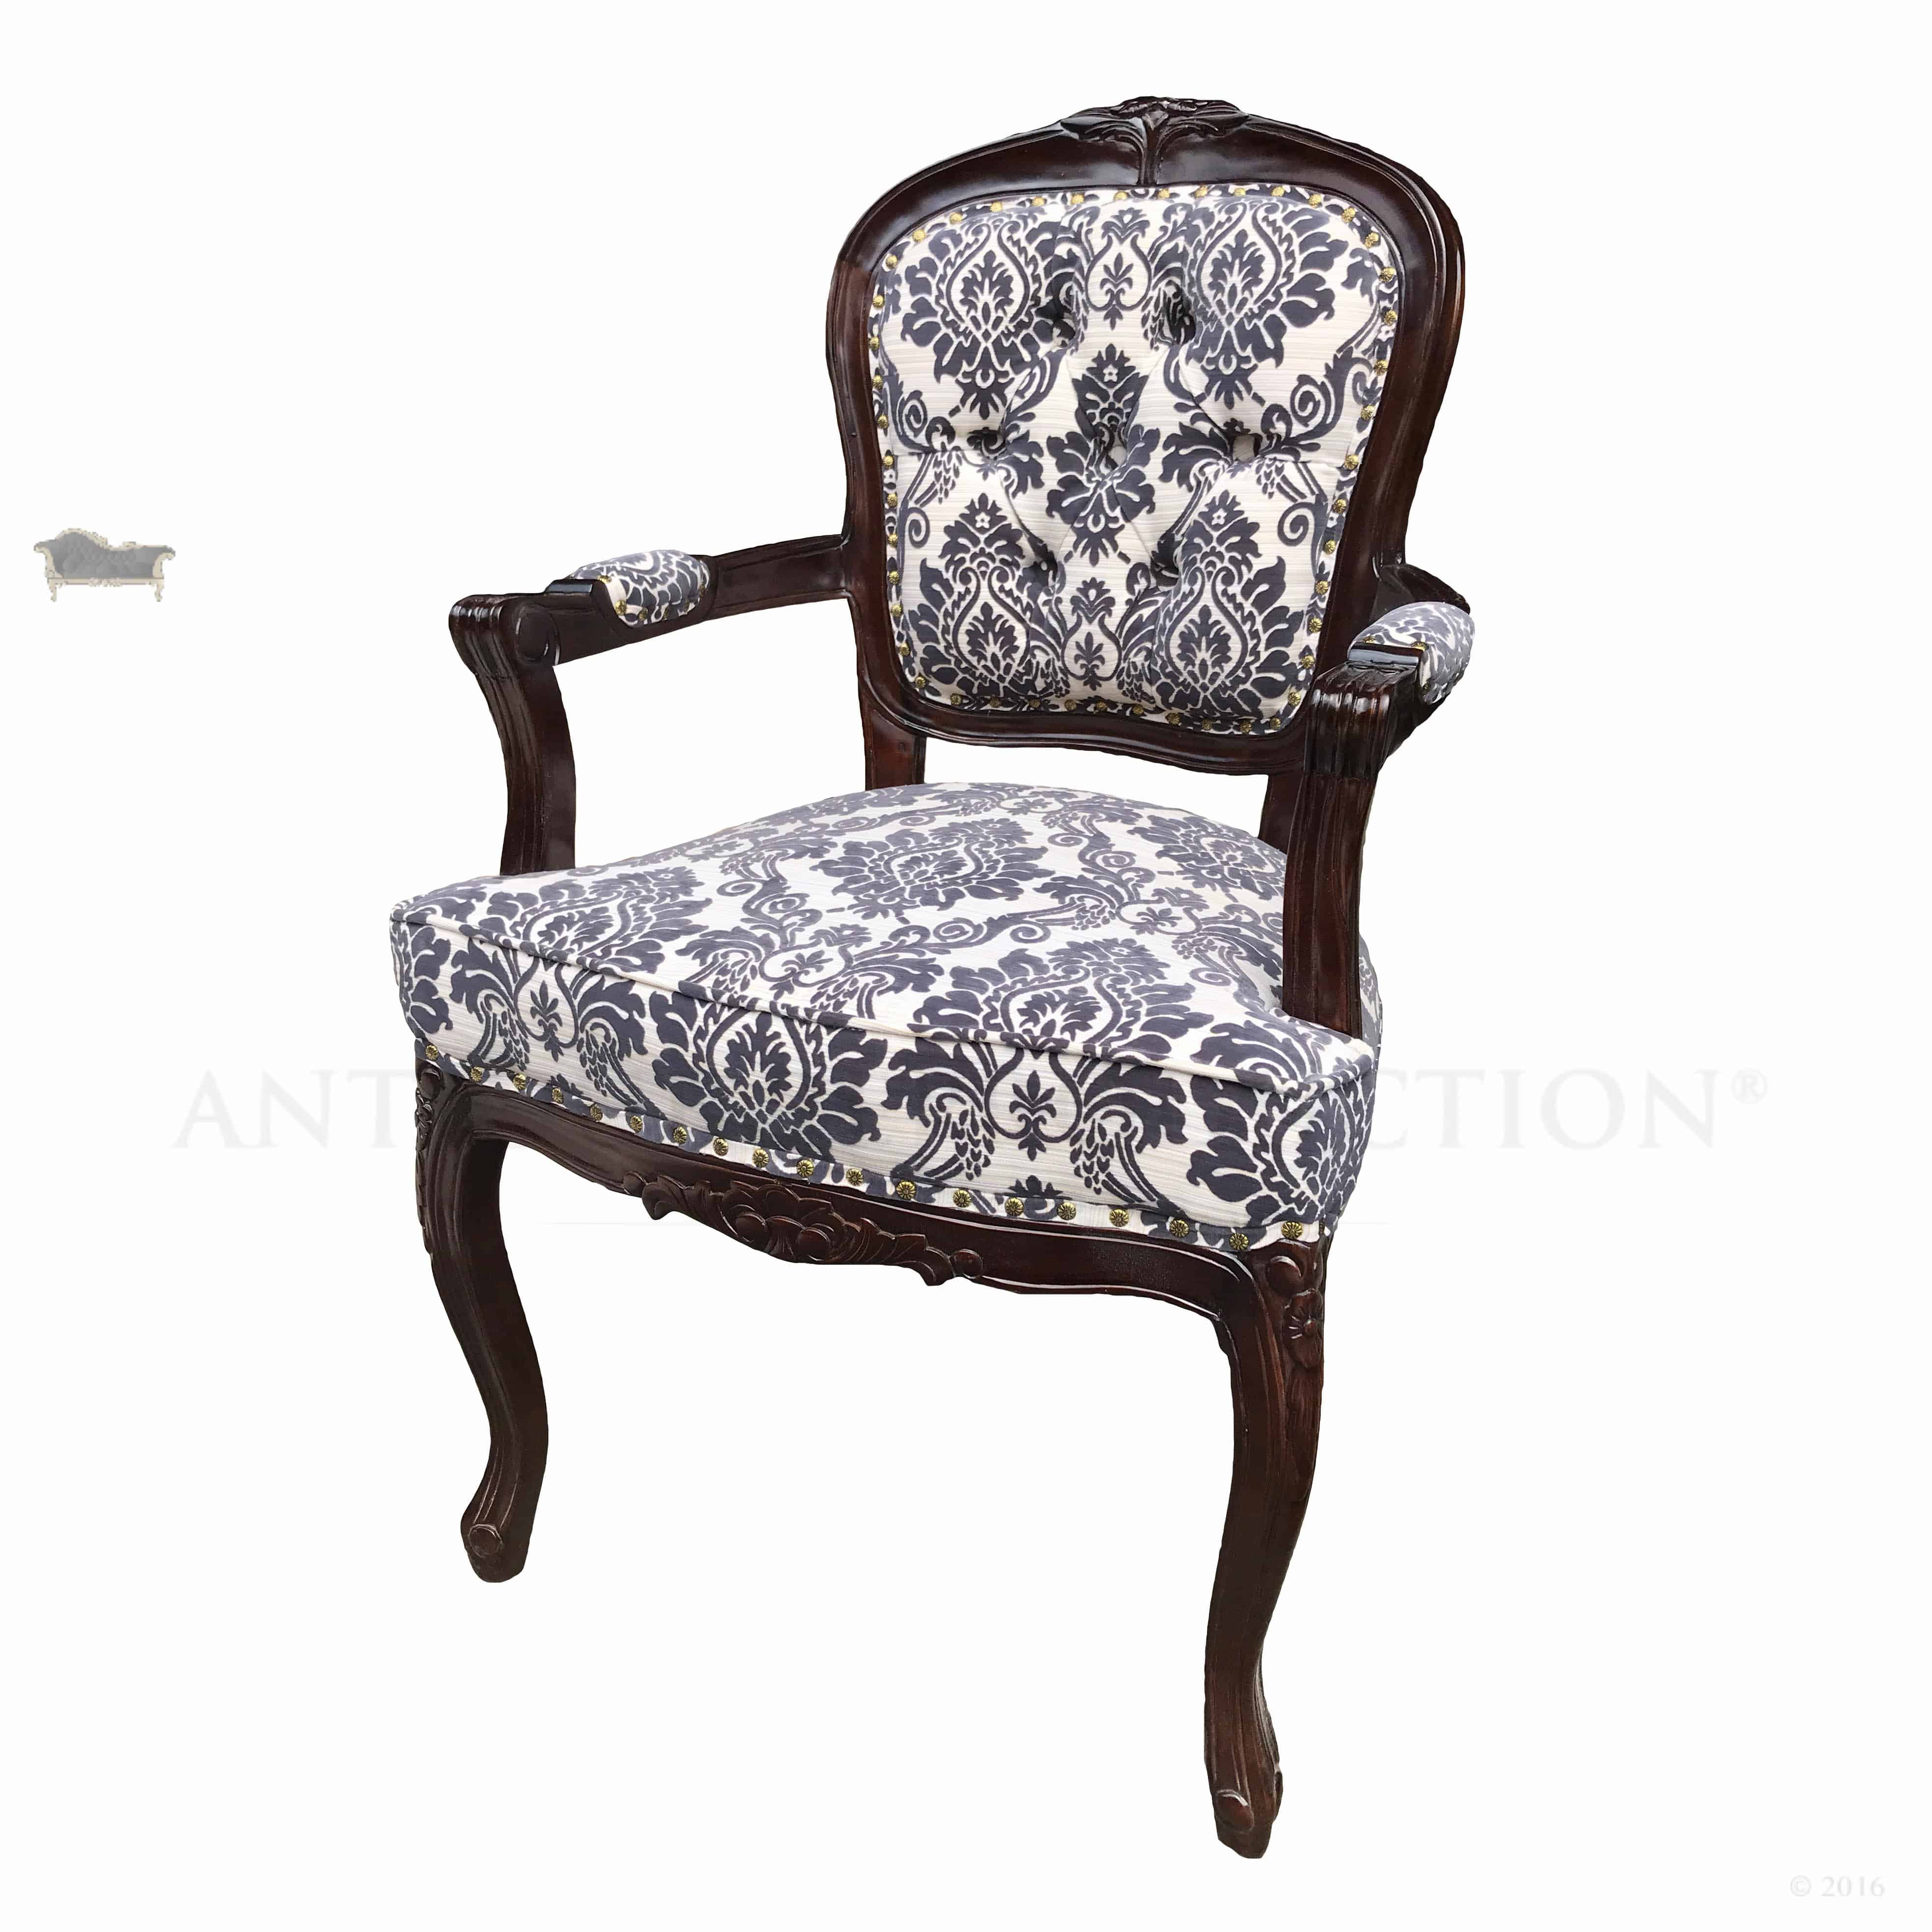 bergere chairs for sale white fluffy chair louis with arms antique reproduction shop